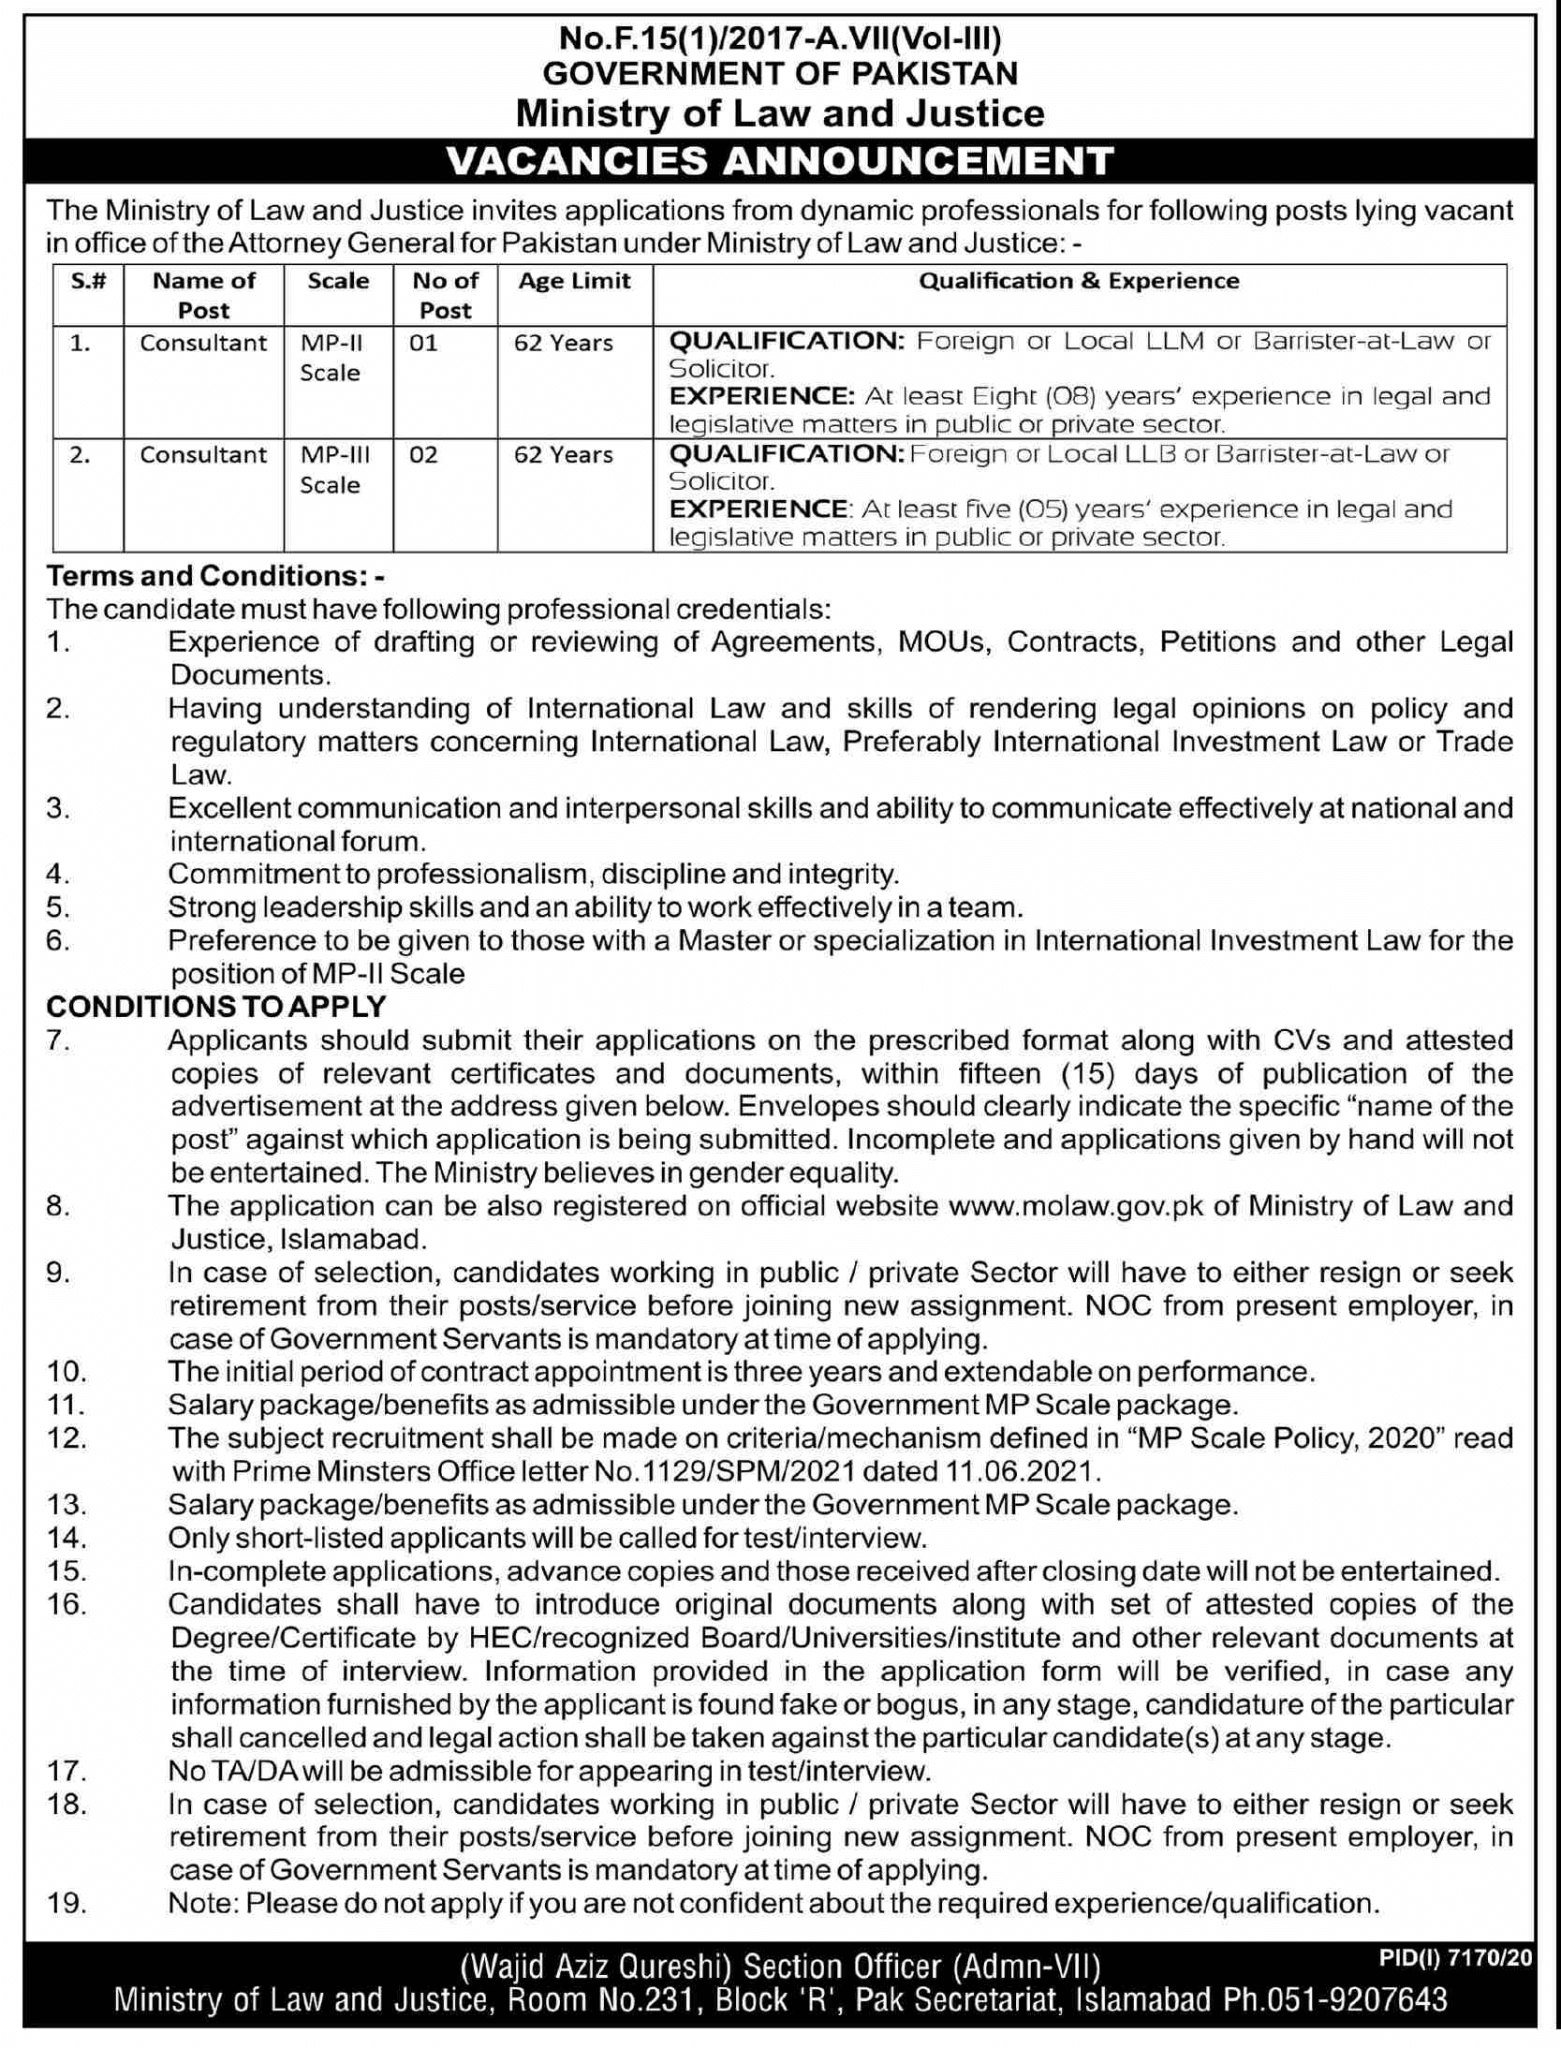 Ministry of Law and Justice Jobs 2021 Apply Online Download Application Form